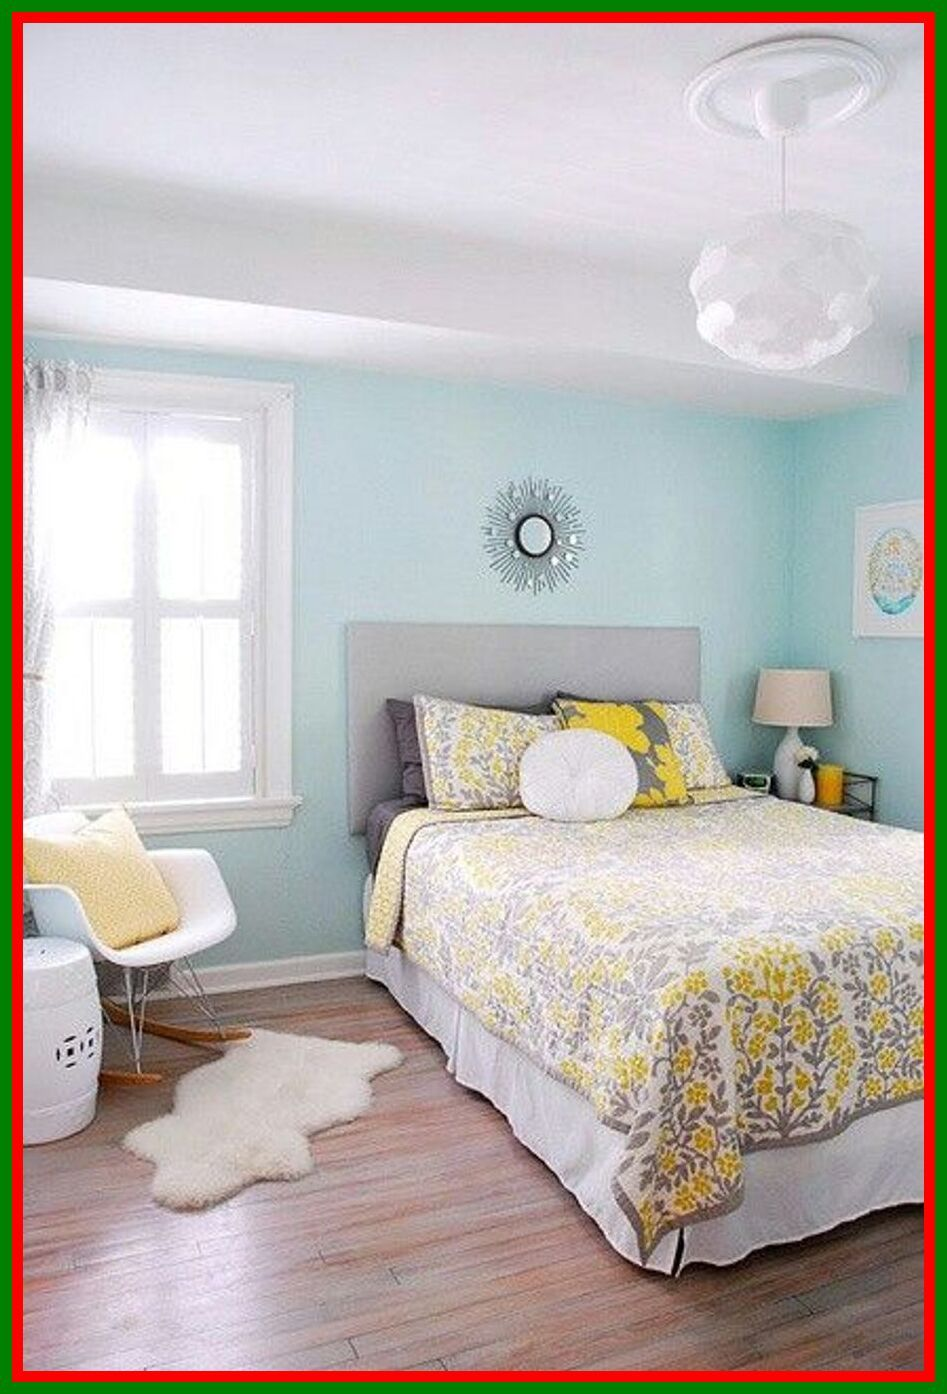 102 Reference Of Light Blue Bedroom Paint Colors In 2020 Small Bedroom Colours Small Bedroom Interior Small Guest Bedroom